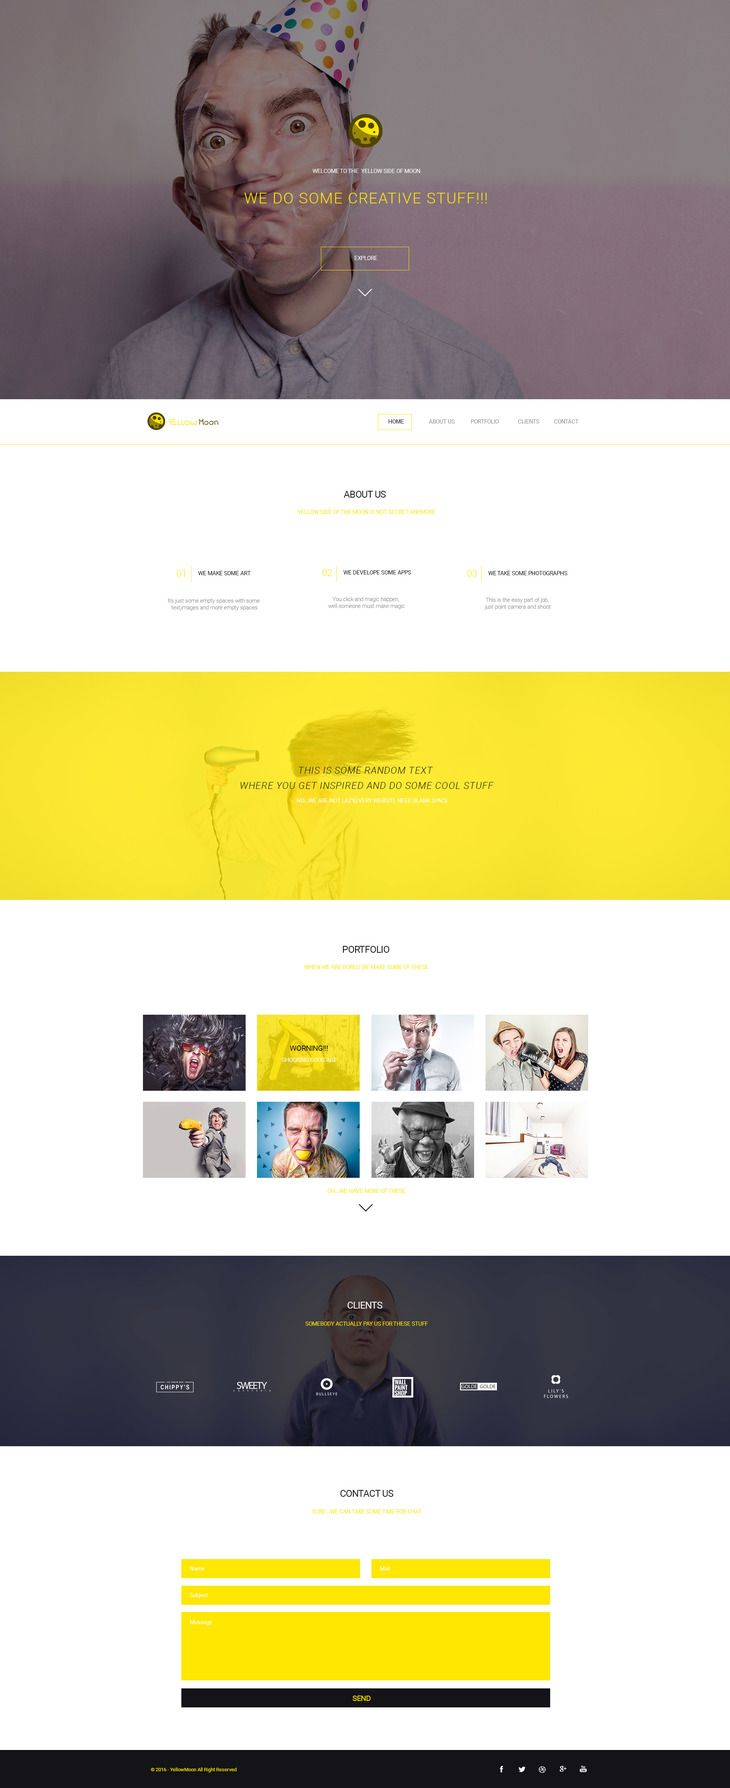 Yellowmoon Free Psd Landing Page Preview